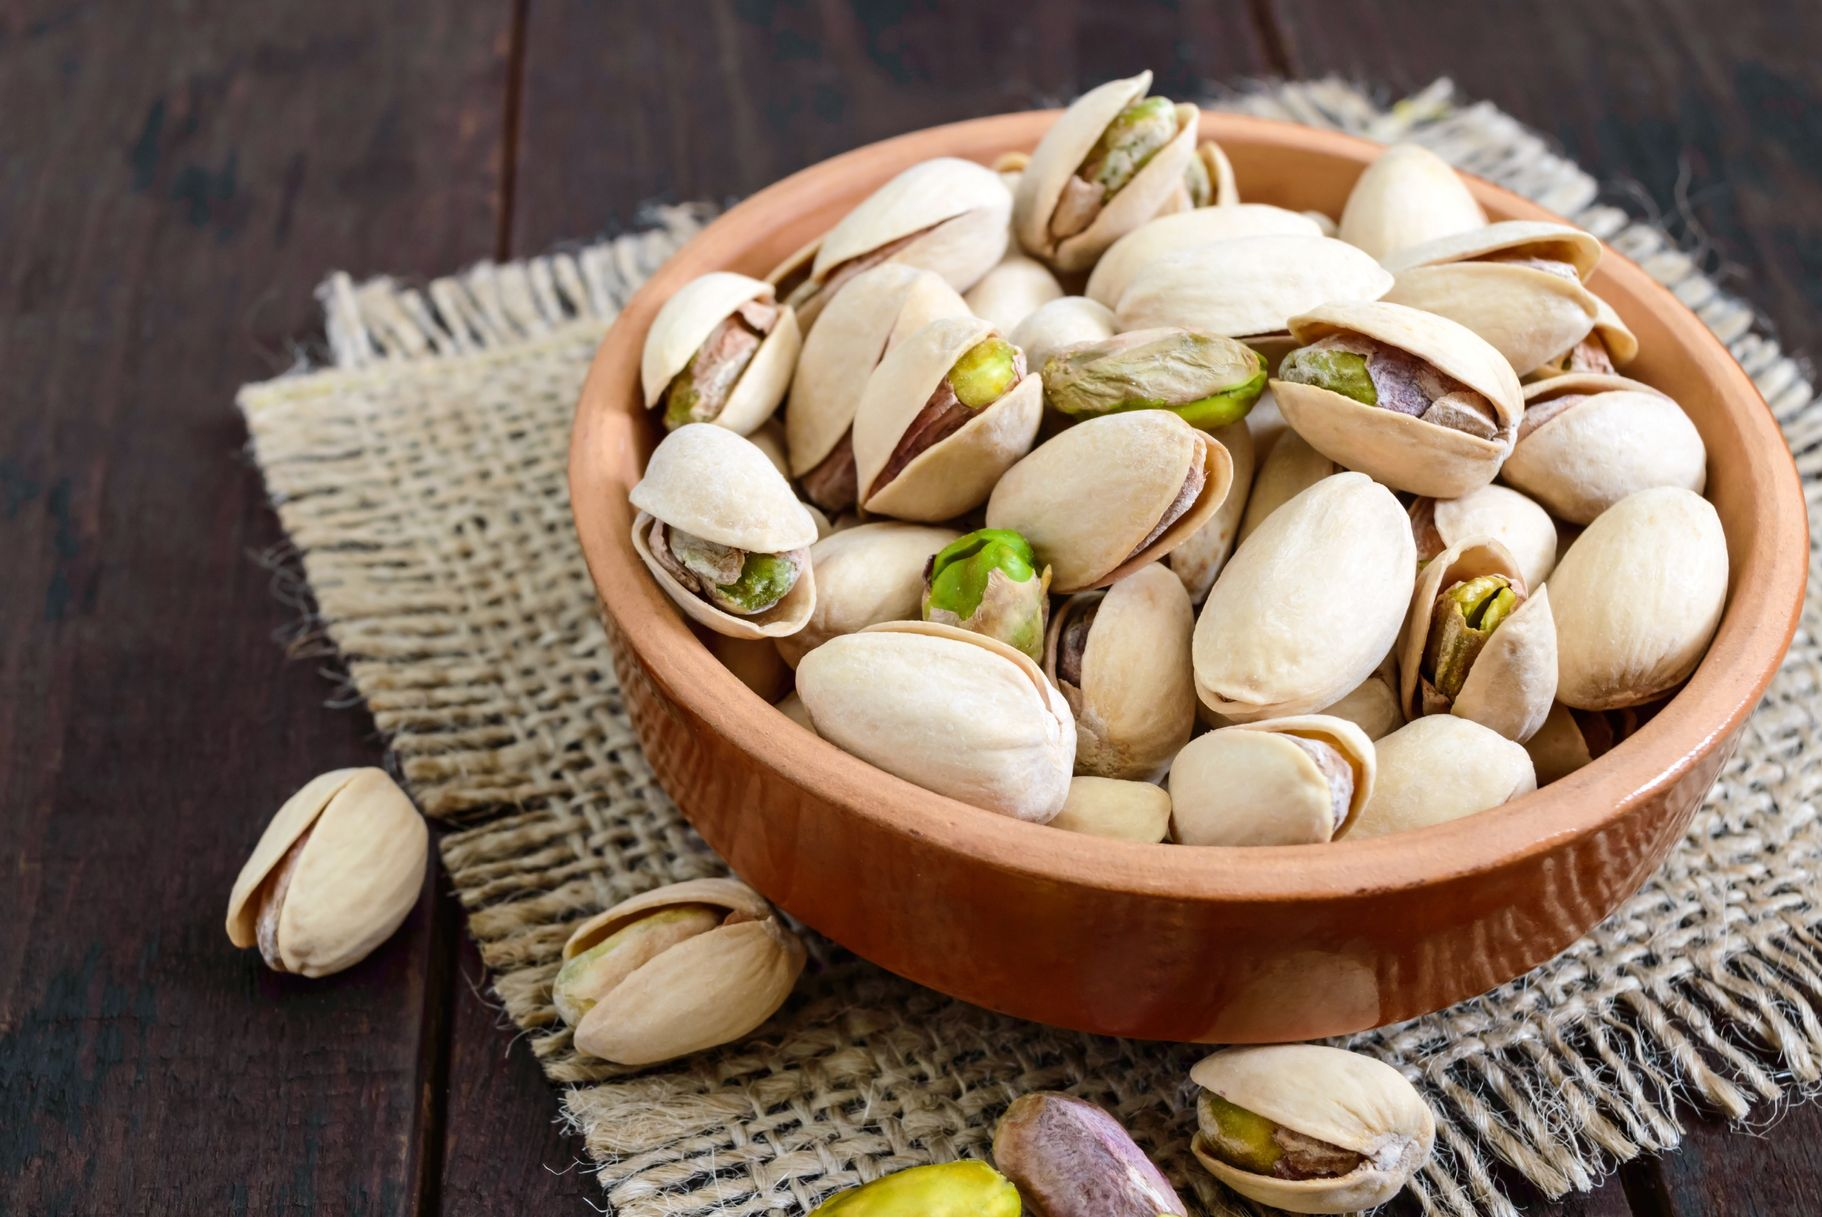 Useful nuts - pistachios in a ceramic bowl on a dark wooden background.